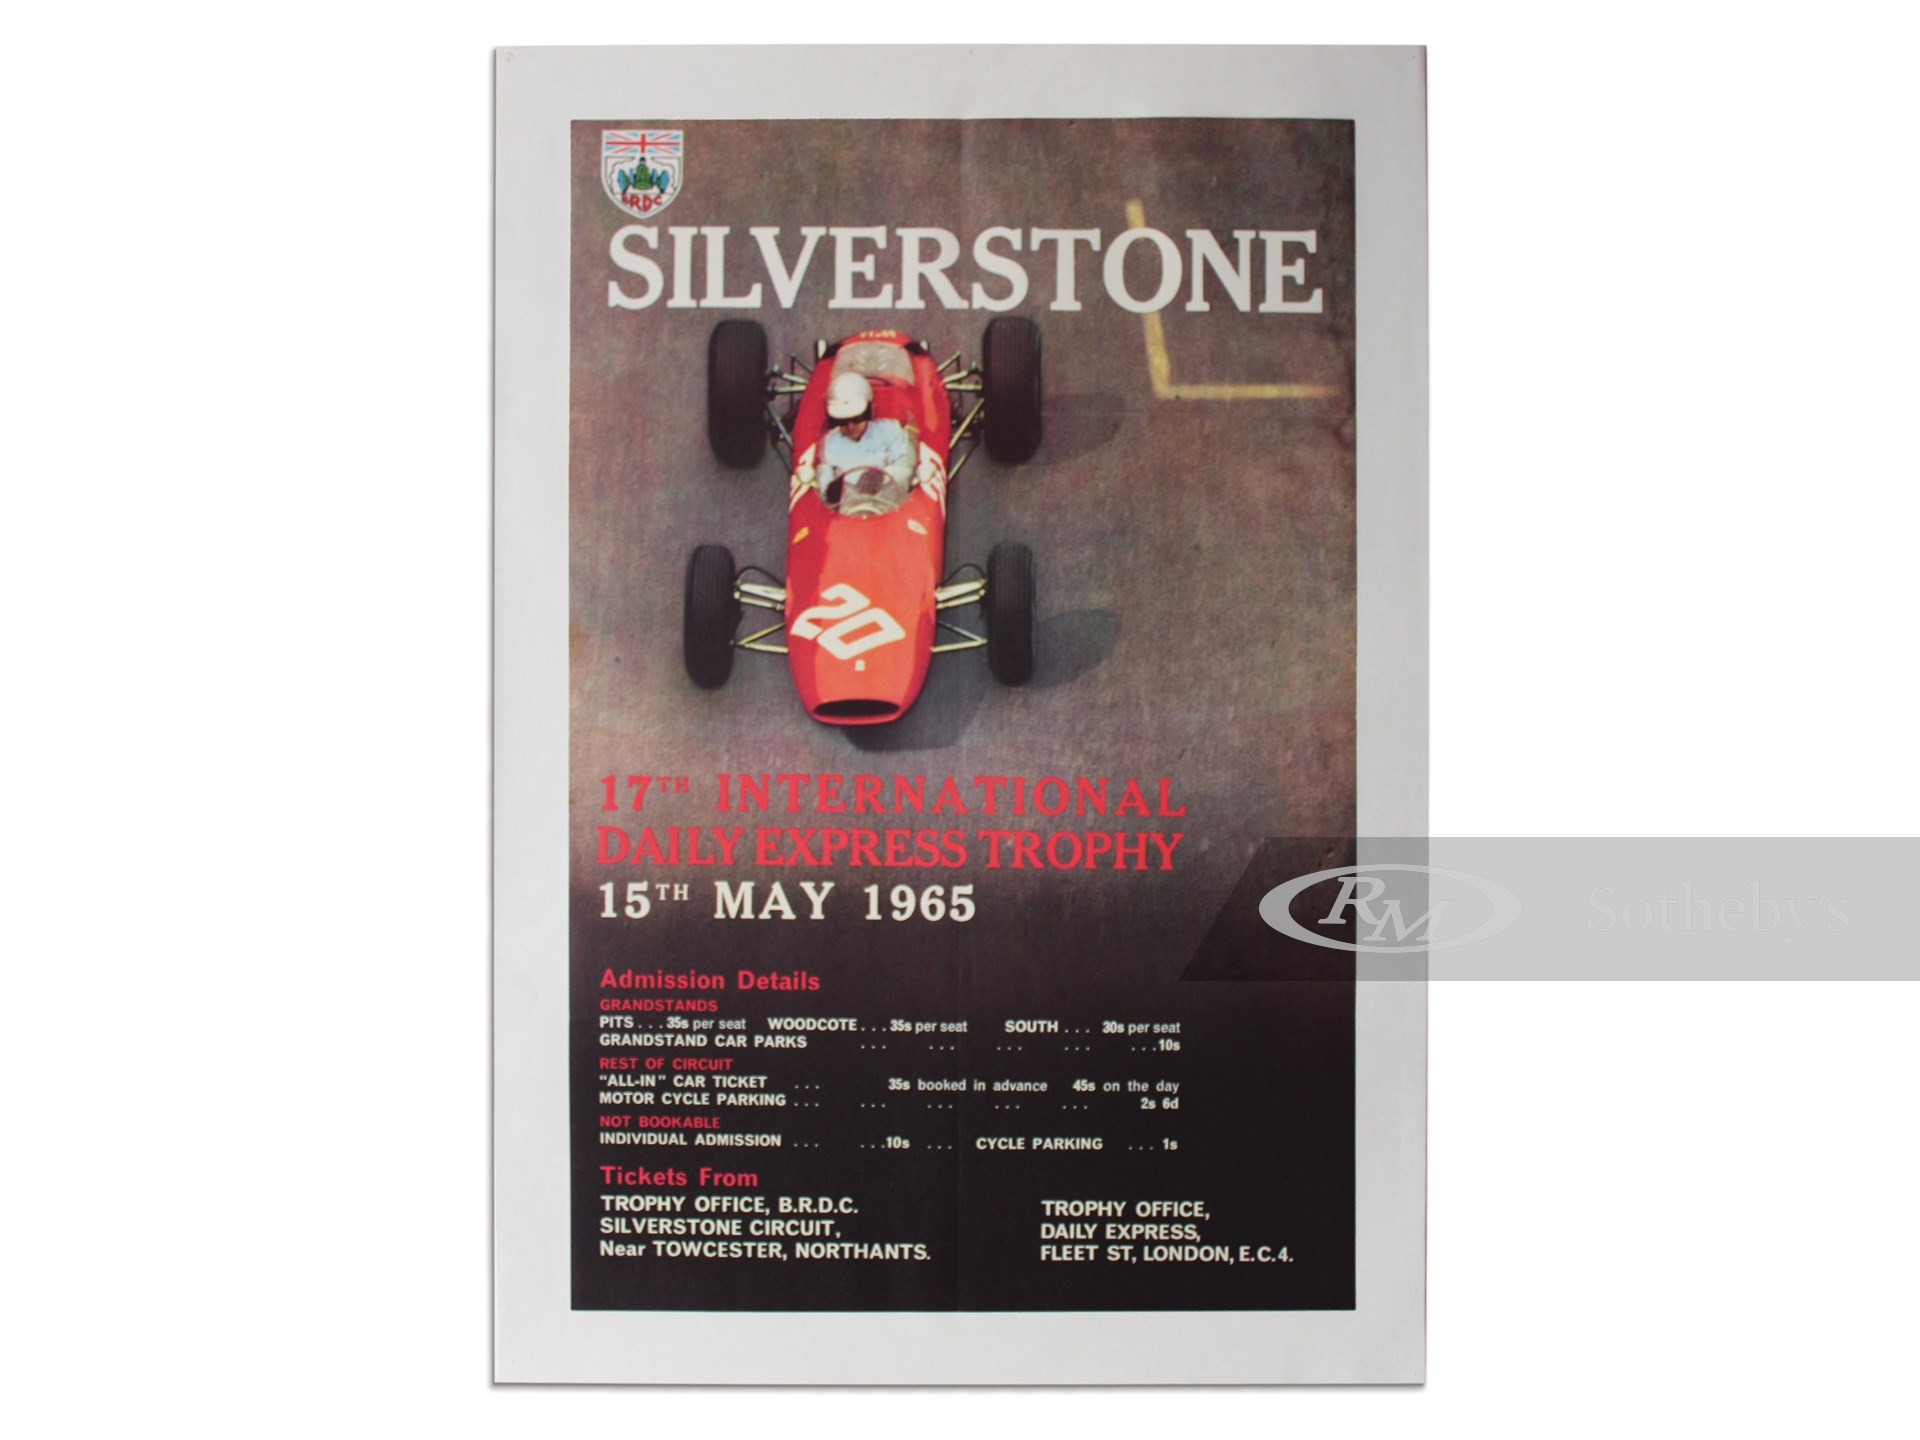 """""""Silverstone 17th International Daily Express Trophy 15th May 1965"""" British Racing Drivers Club Vintage Event Poster -"""